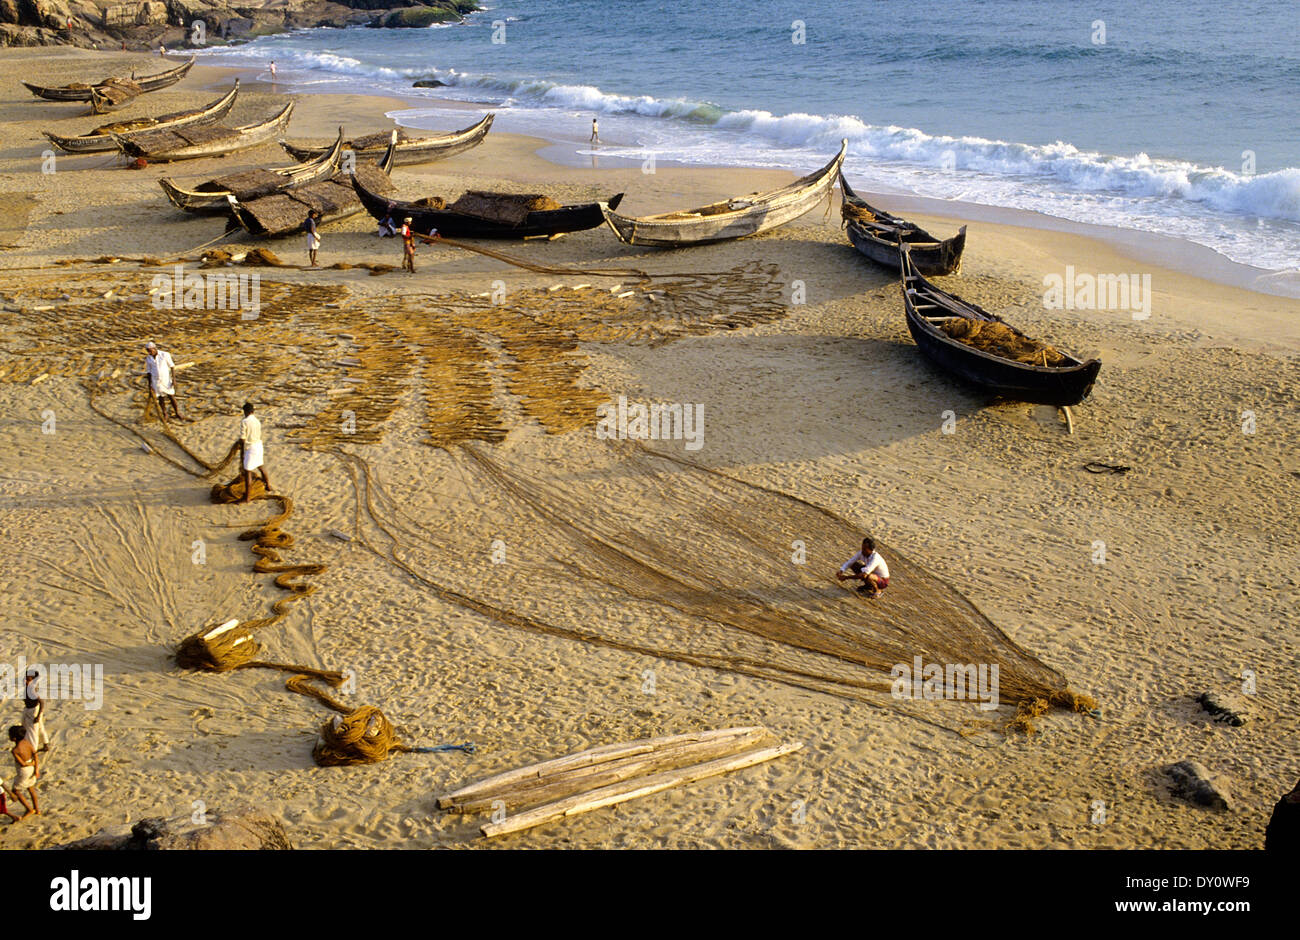 Fisher man's, Kovalam beach. Kerala state.South India. - Stock Image